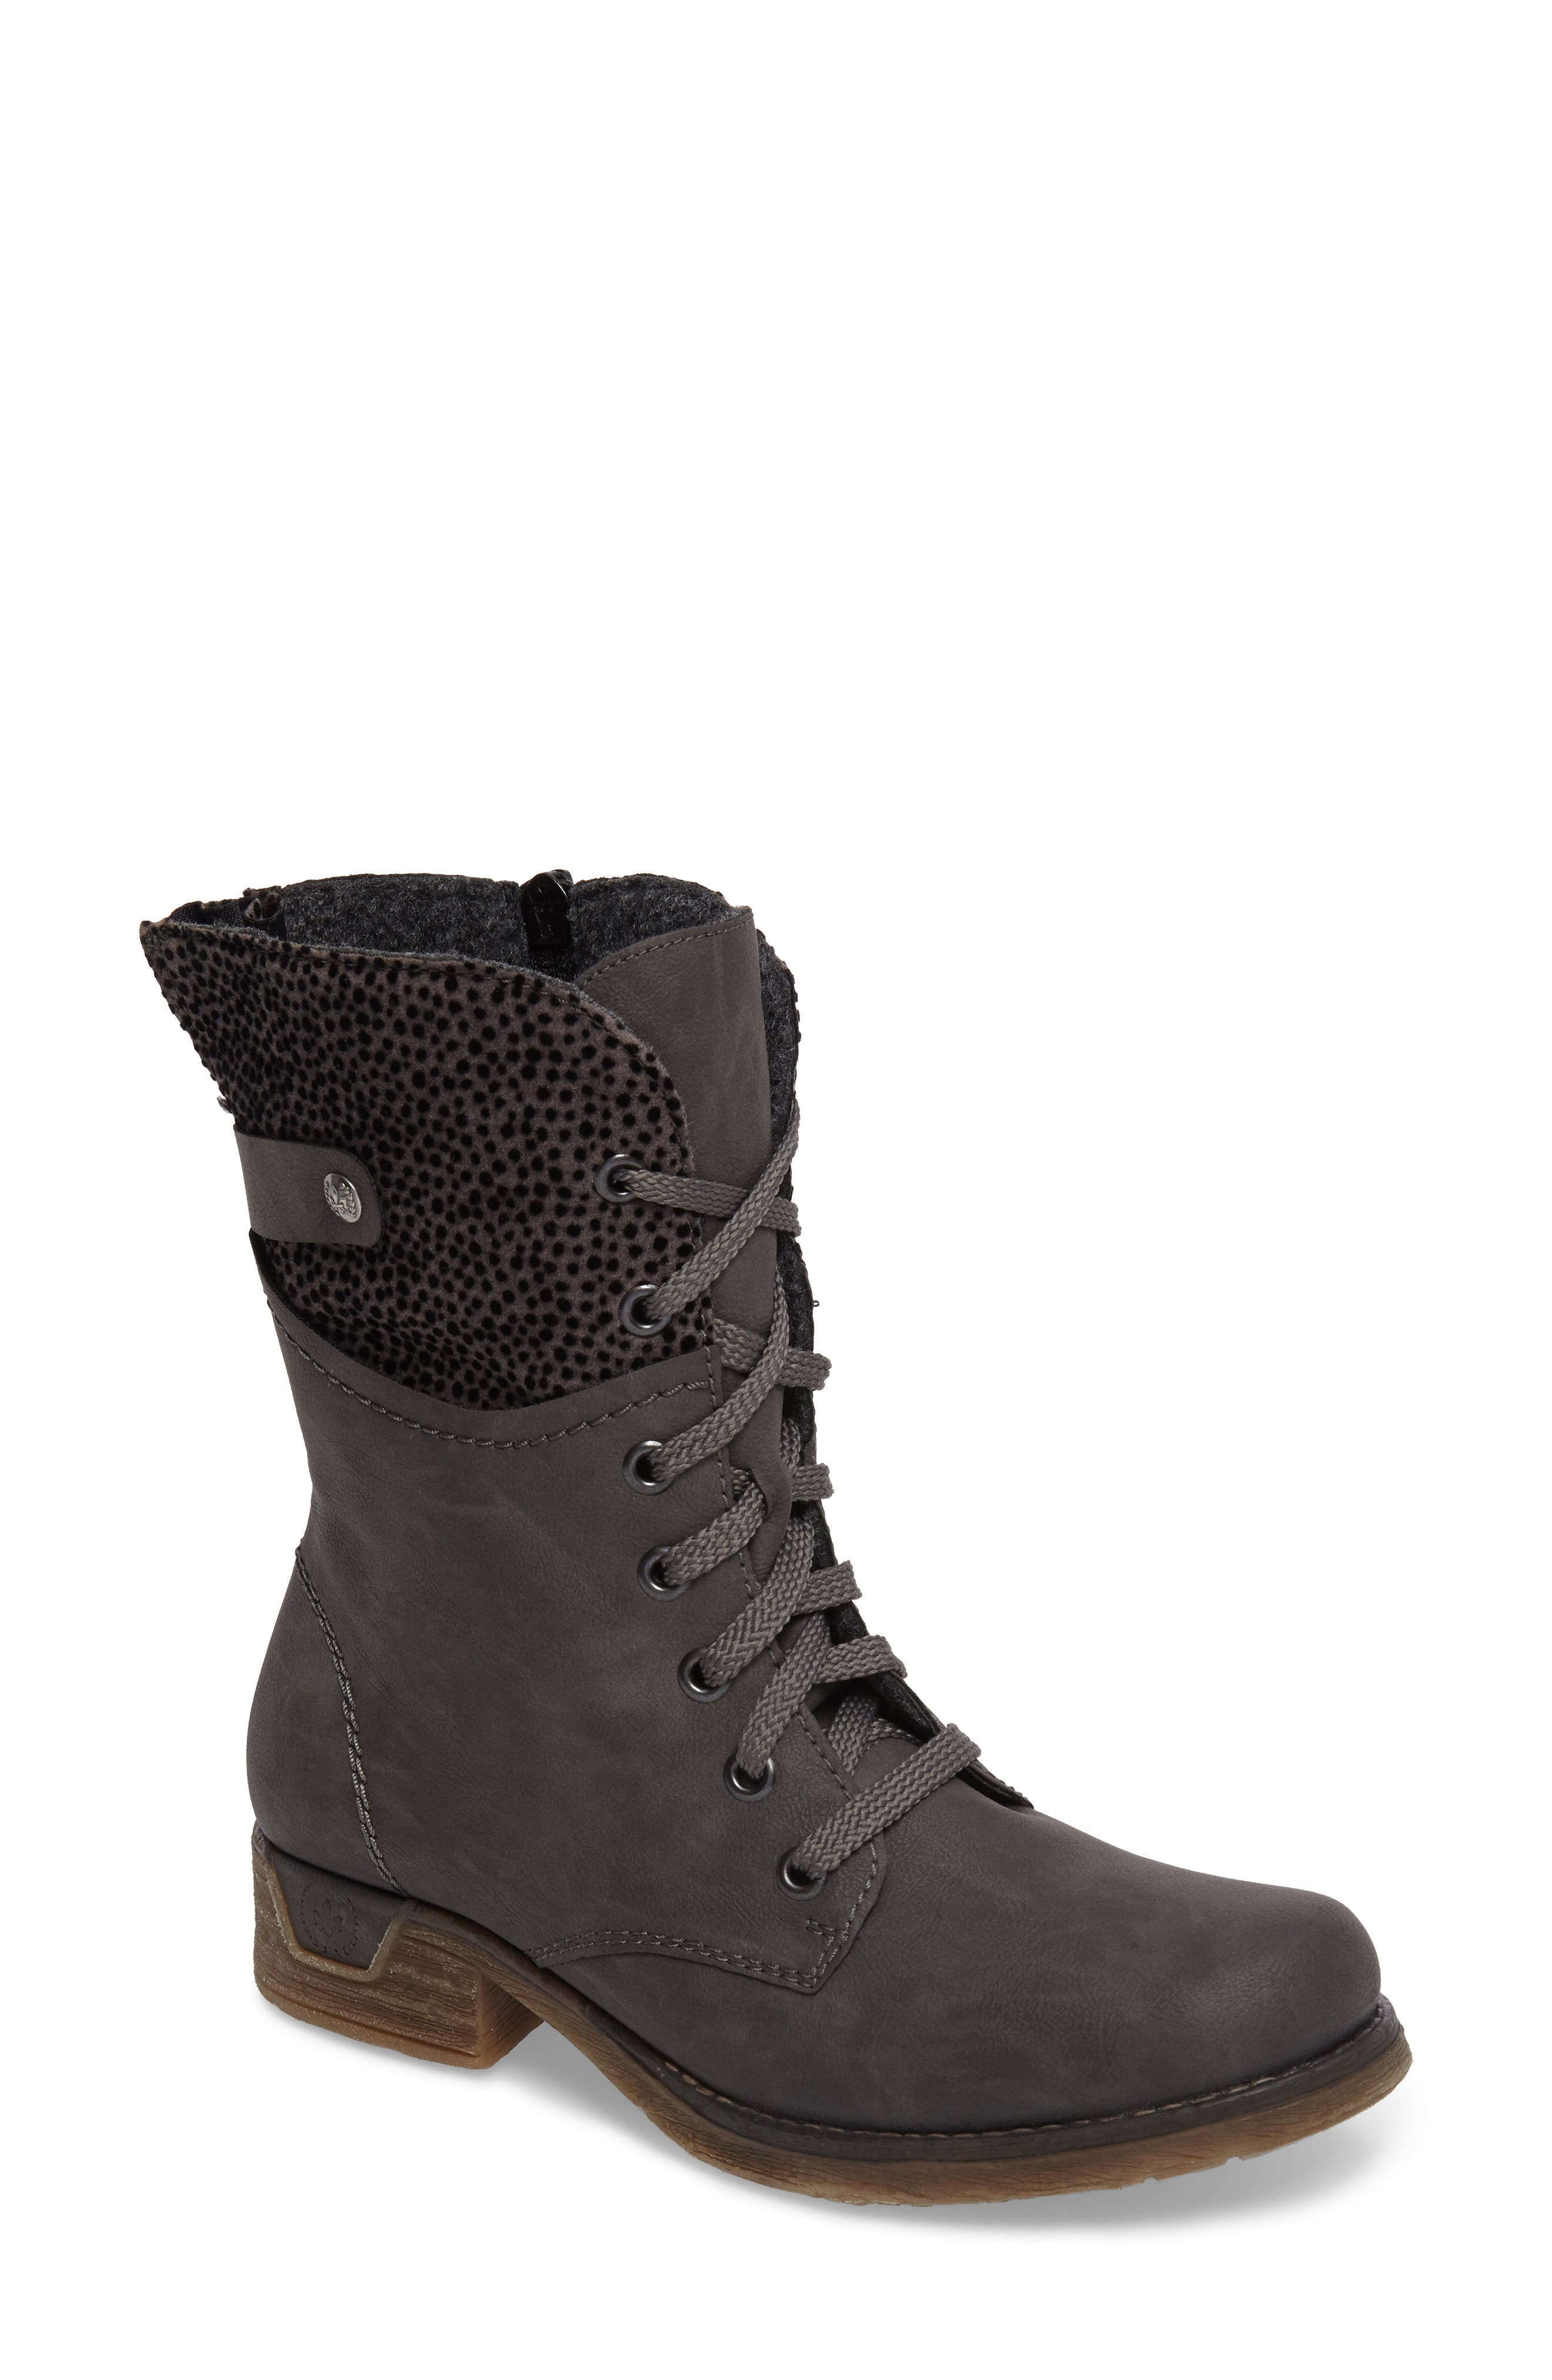 'Fee 04' Lace-Up Boot,                             Main thumbnail 1, color,                             FUMO FAUX LEATHER